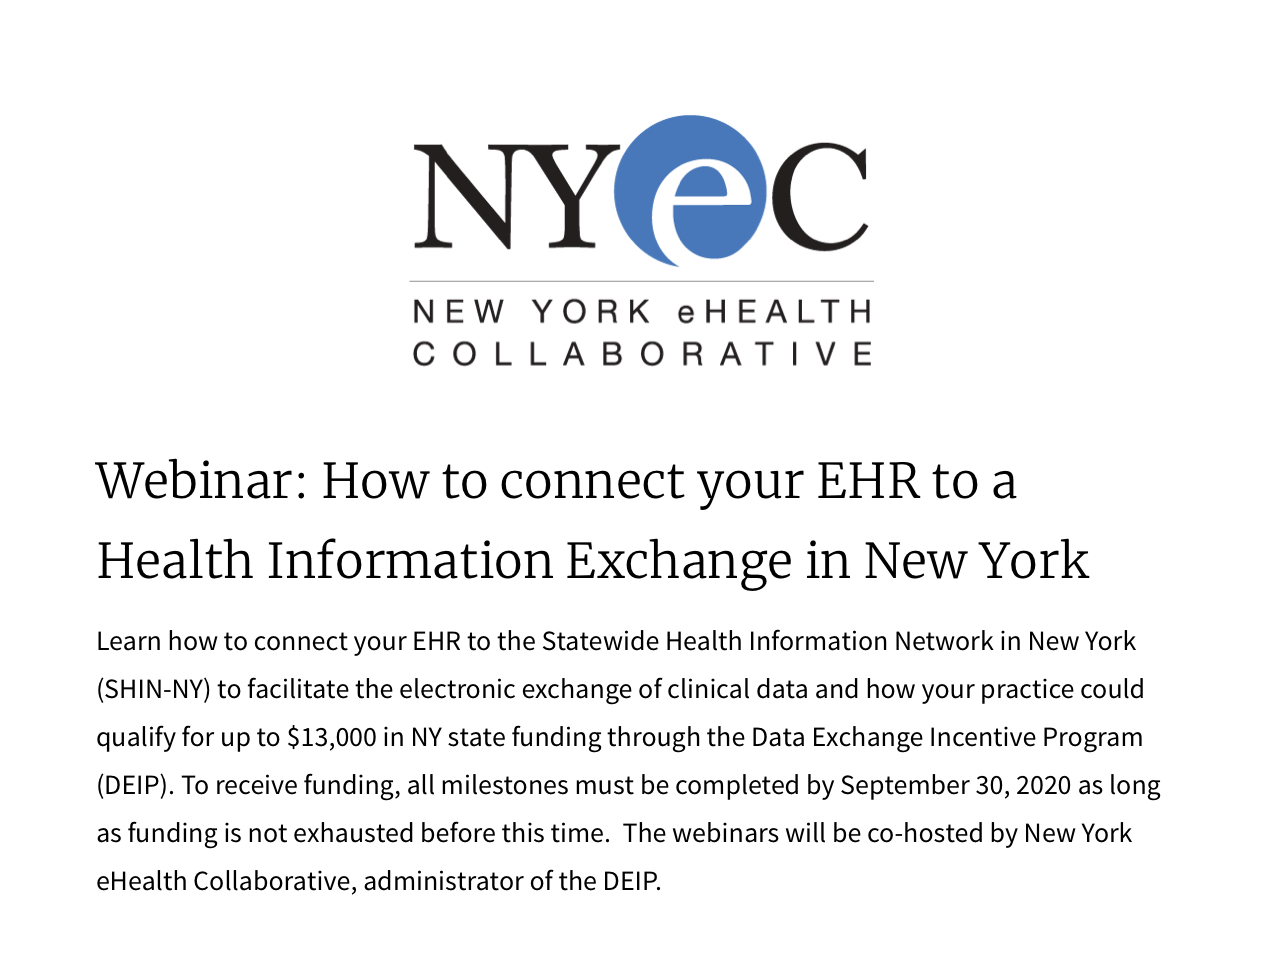 Webinar: How to connect your EHR to a Health Information Exchange in New York